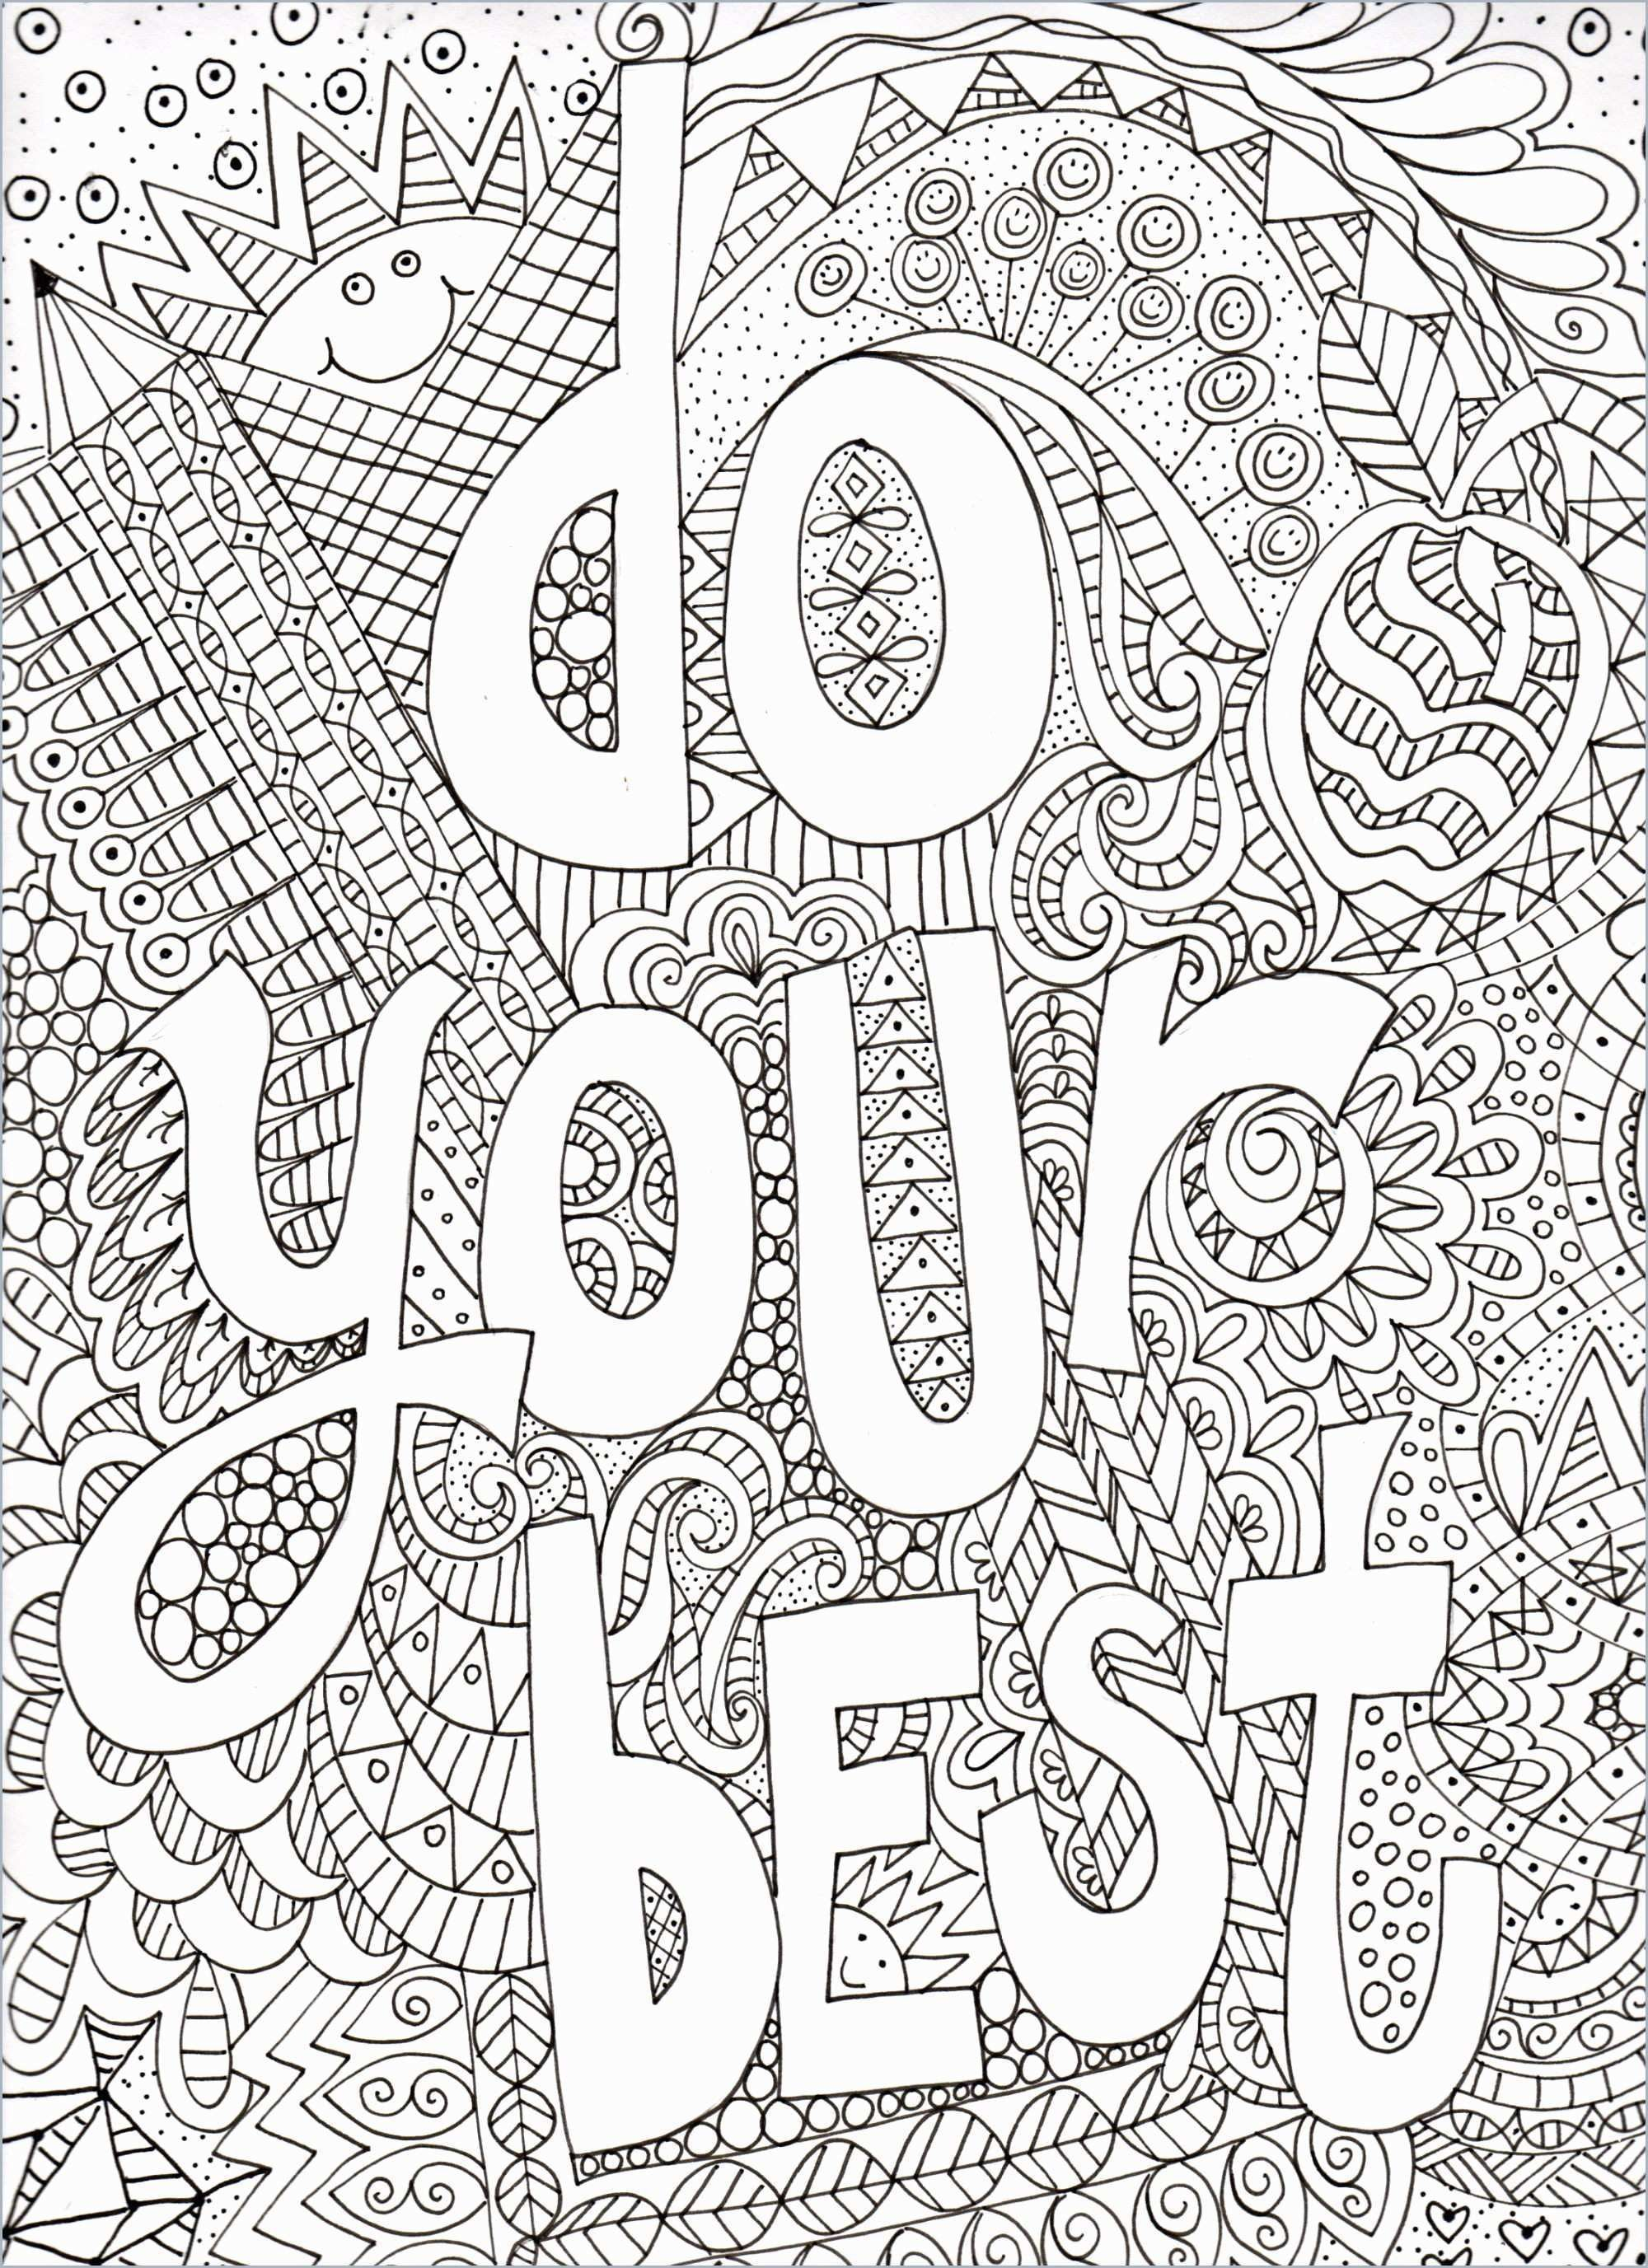 Cute Food Coloring Pages Cute Food Coloring Sheets Inspirational Doodle Coloring Book Cute I Albanysinsanity Com Coloring Pages Inspirational Quote Coloring Pages Coloring Pages